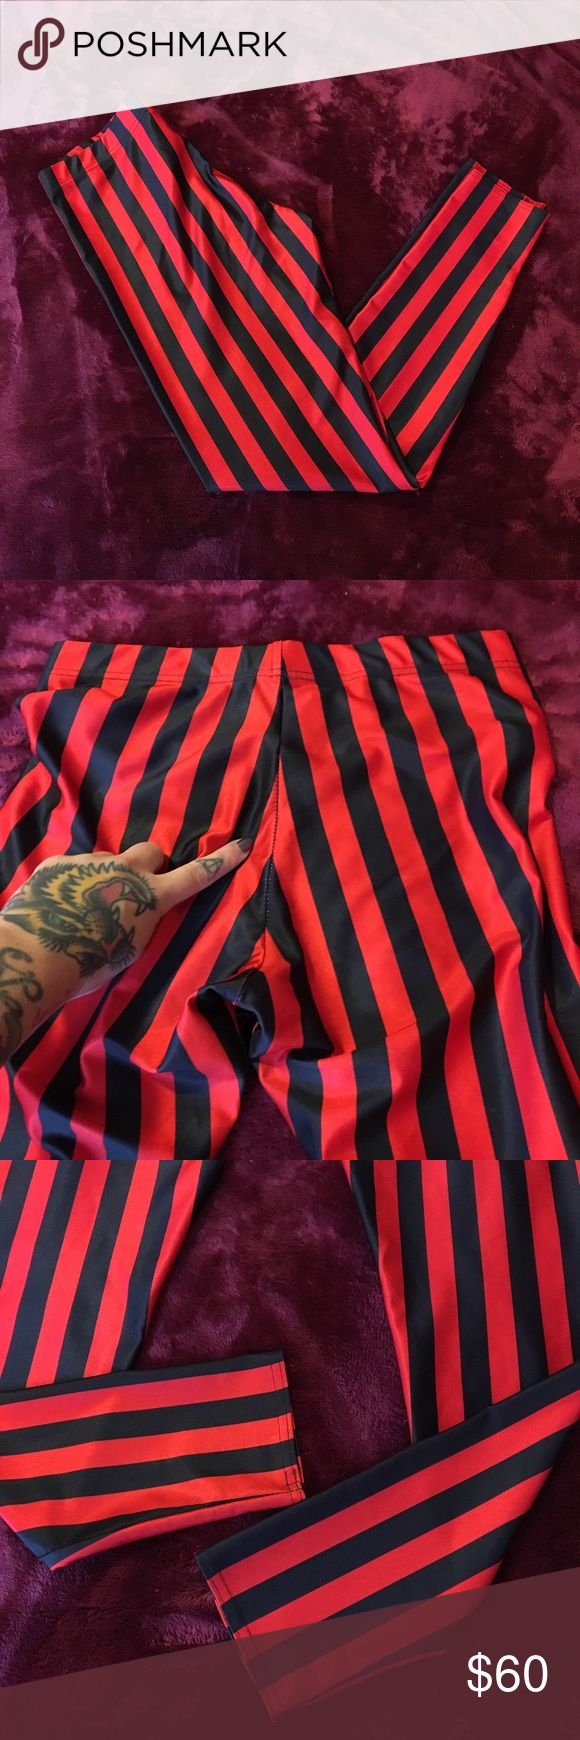 BlackMilk Clothing Red & Black Beetlejuice Legs L Bought these from another sharkie, in this exact condition. I've worn a few times, absolutely obsessed with them but they're too big now. Pictures of the seam stretch posted, but no other signs of wear. Size L, hard to find!! Blackmilk Pants Leggings